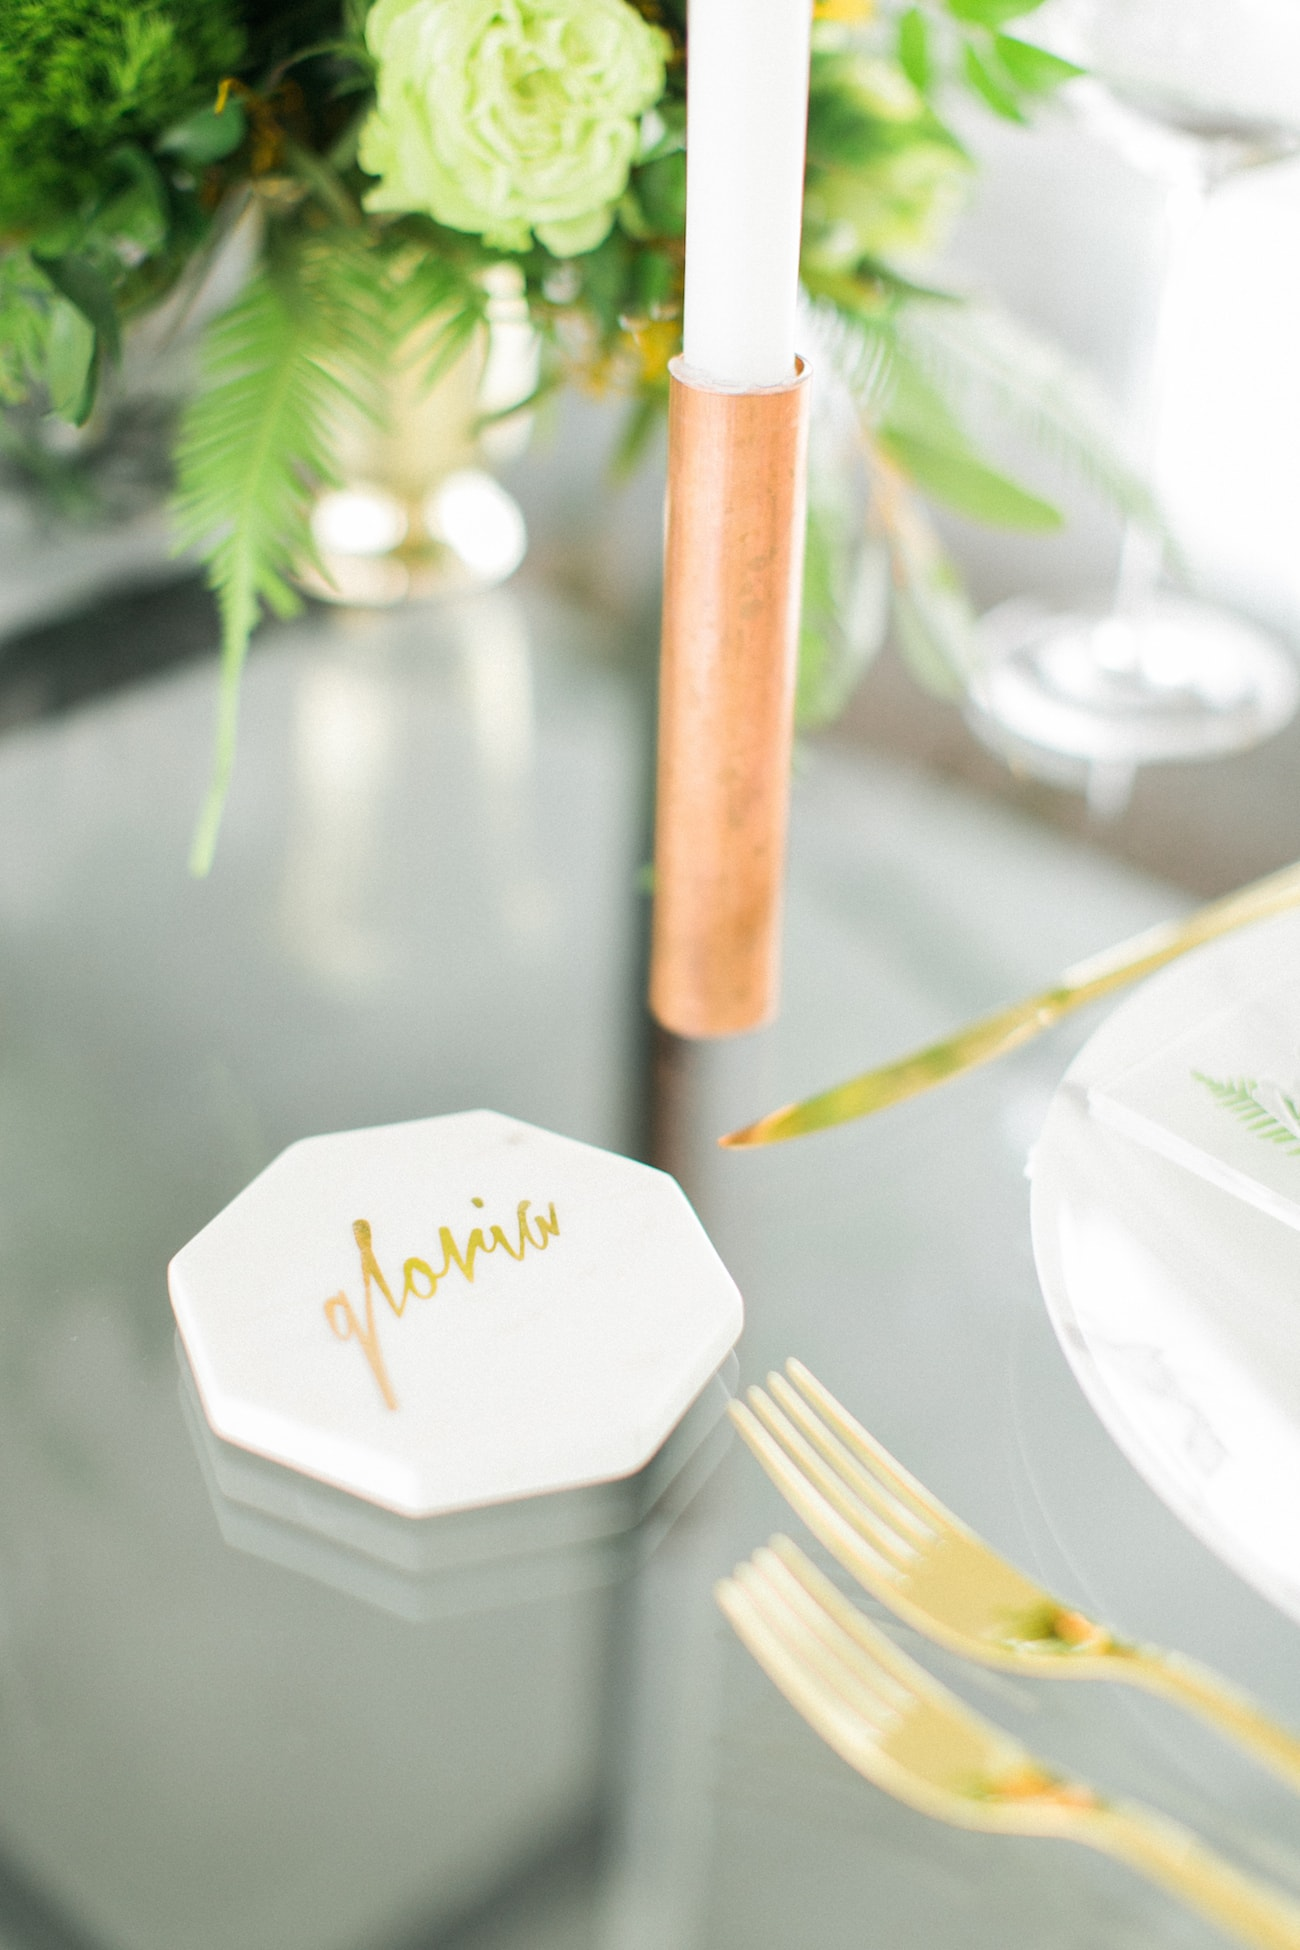 Marble Coaster Place Card | Credit: Ruth Eileen Photography